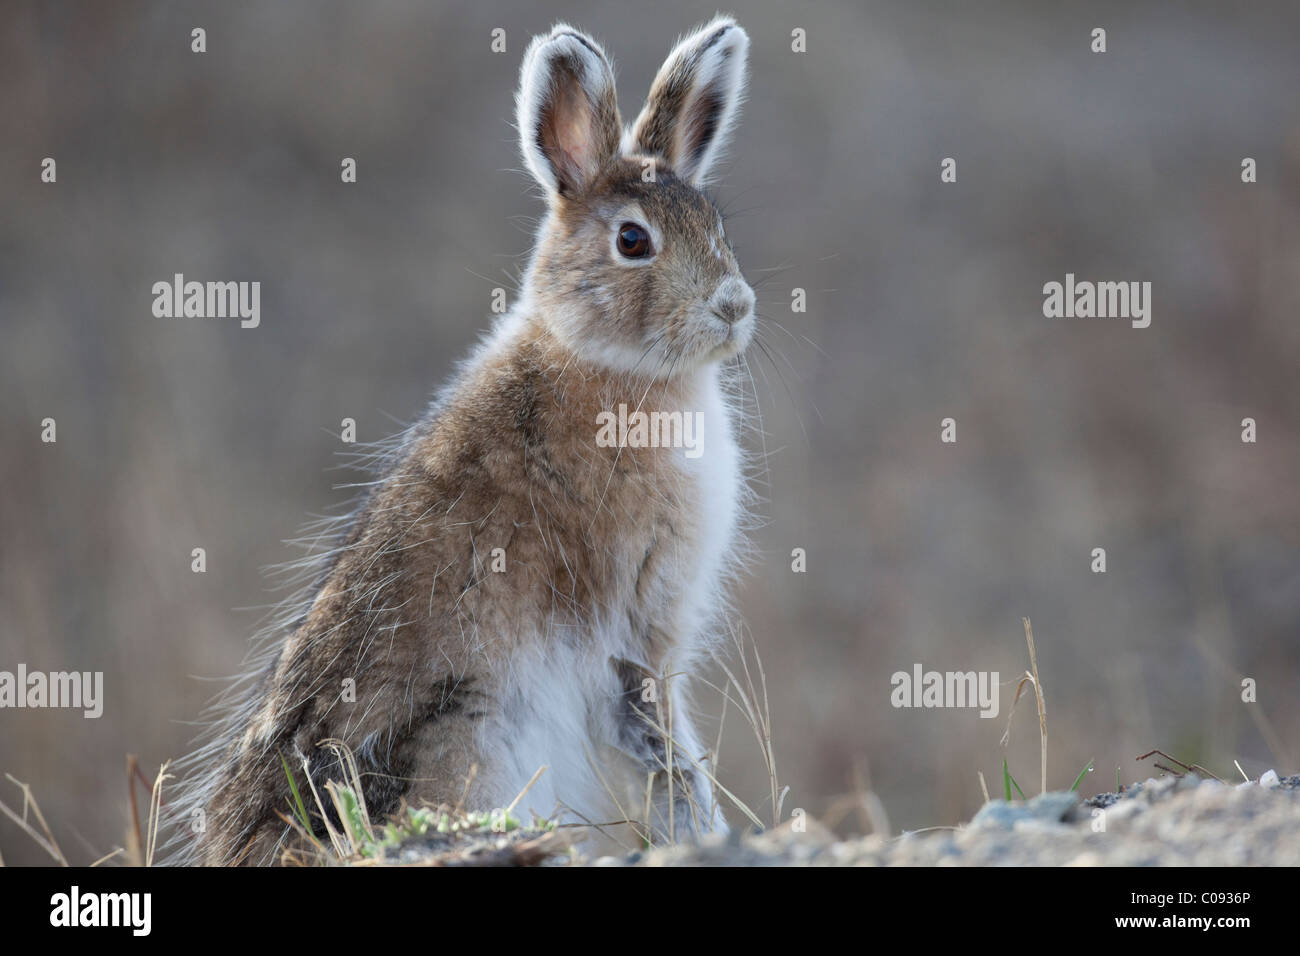 Close up of an Snowshoe Hare sitting and alert, Denali National Park and Preserve, Interior Alaska, Spring - Stock Image